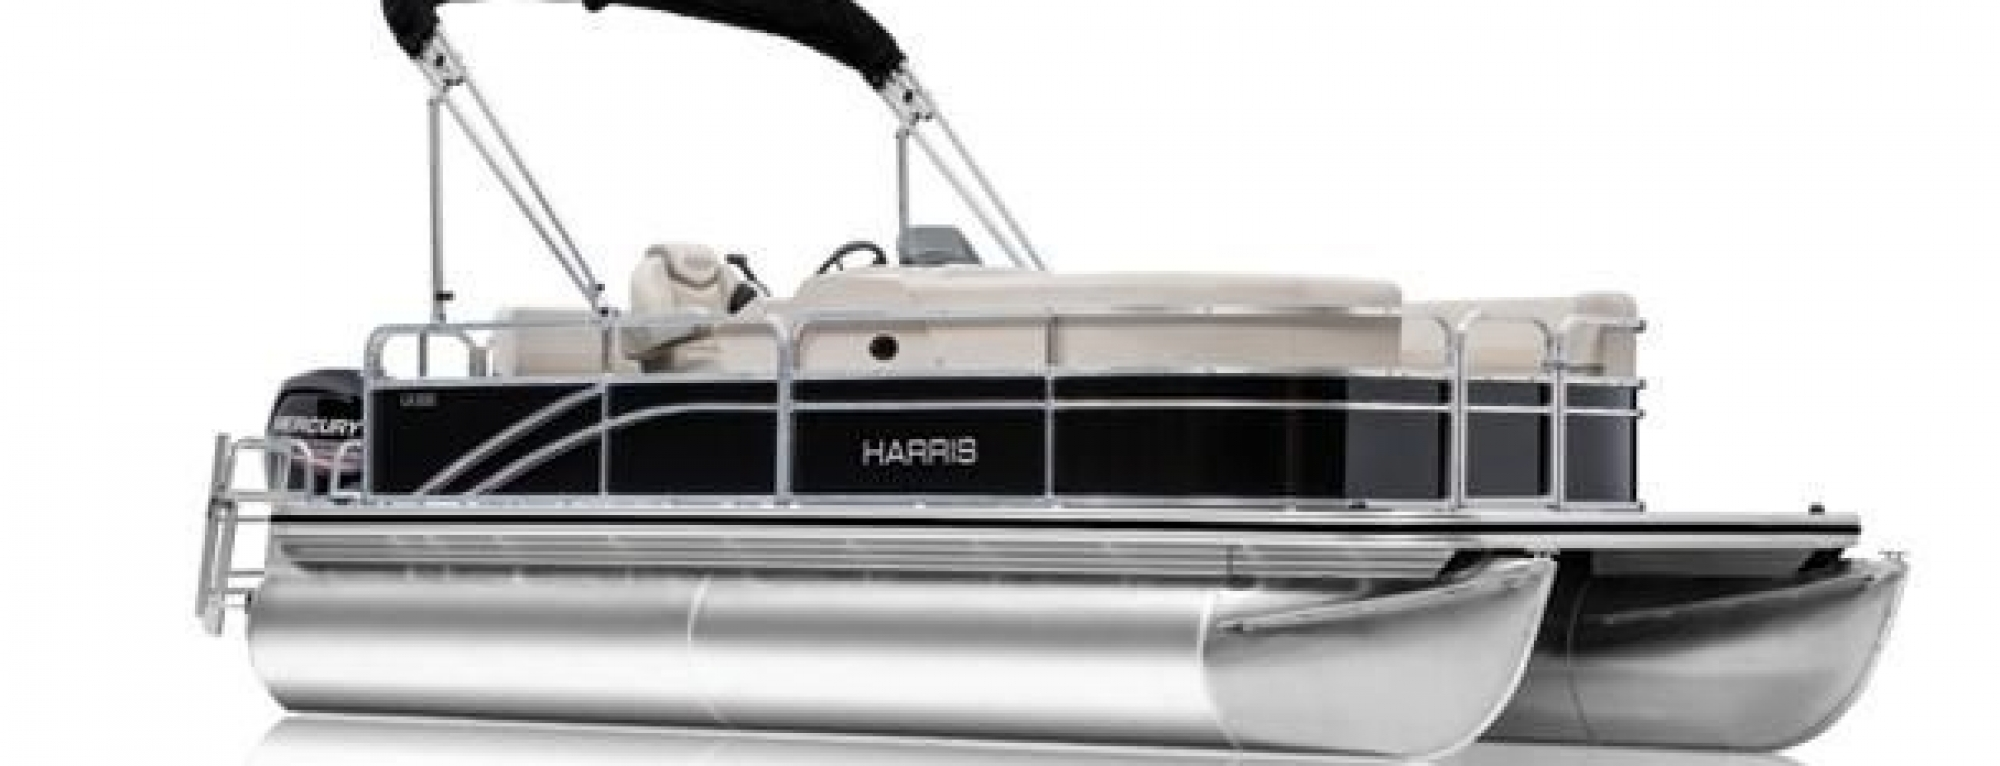 <br><br><br><br>2021 Harris Cruiser LX180 Fish<br>Call to inquire!!